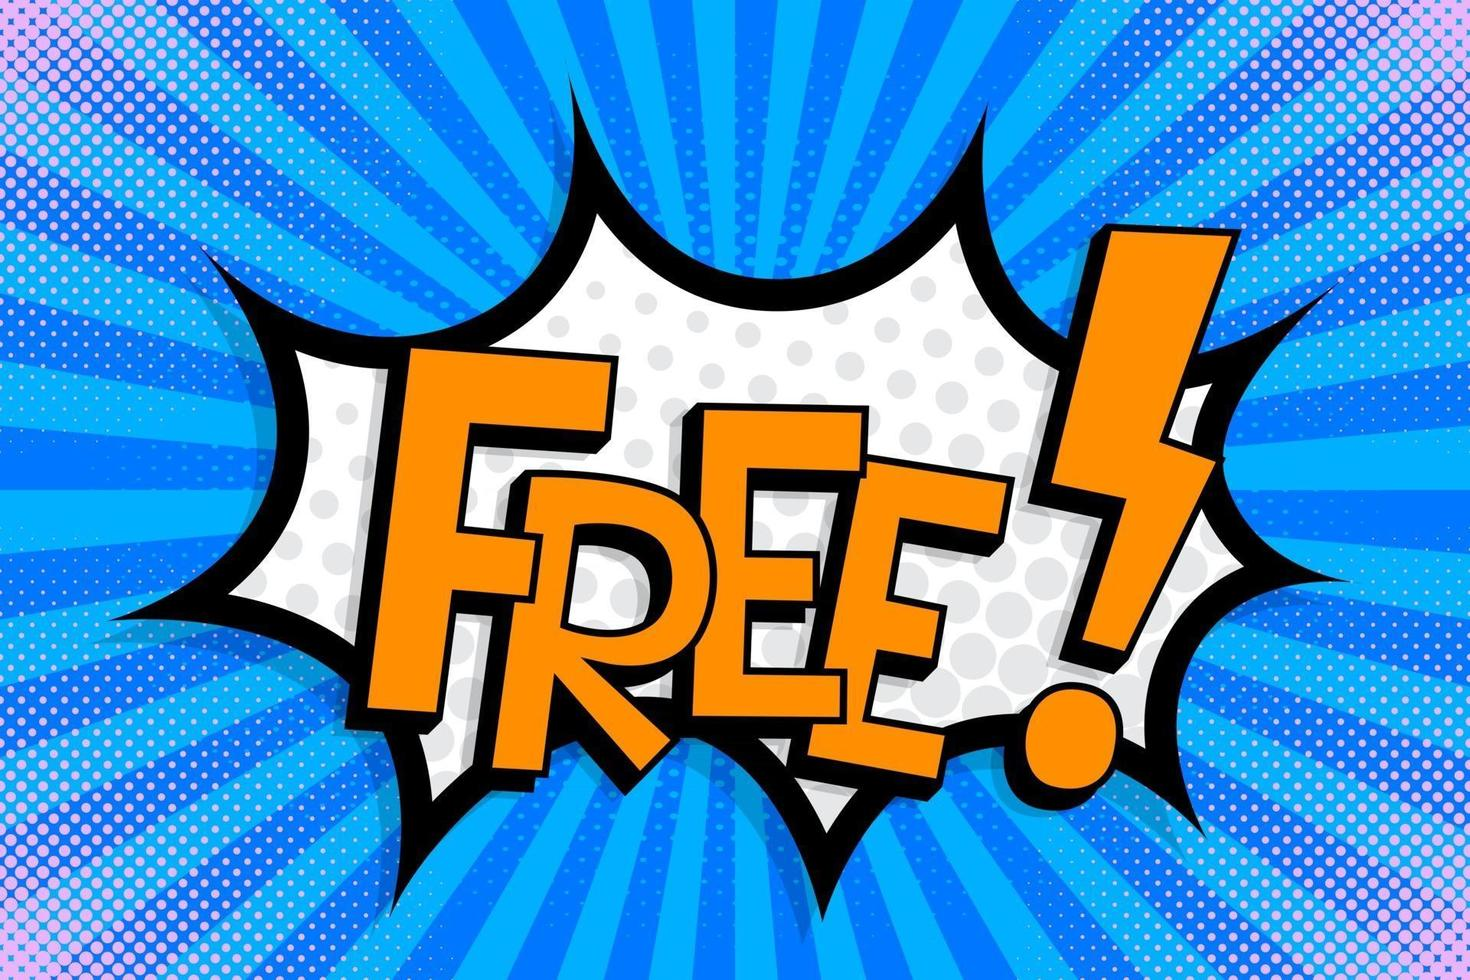 FREE Comics book abstract background. wording in comic speech bubble in pop art style on burst background vector